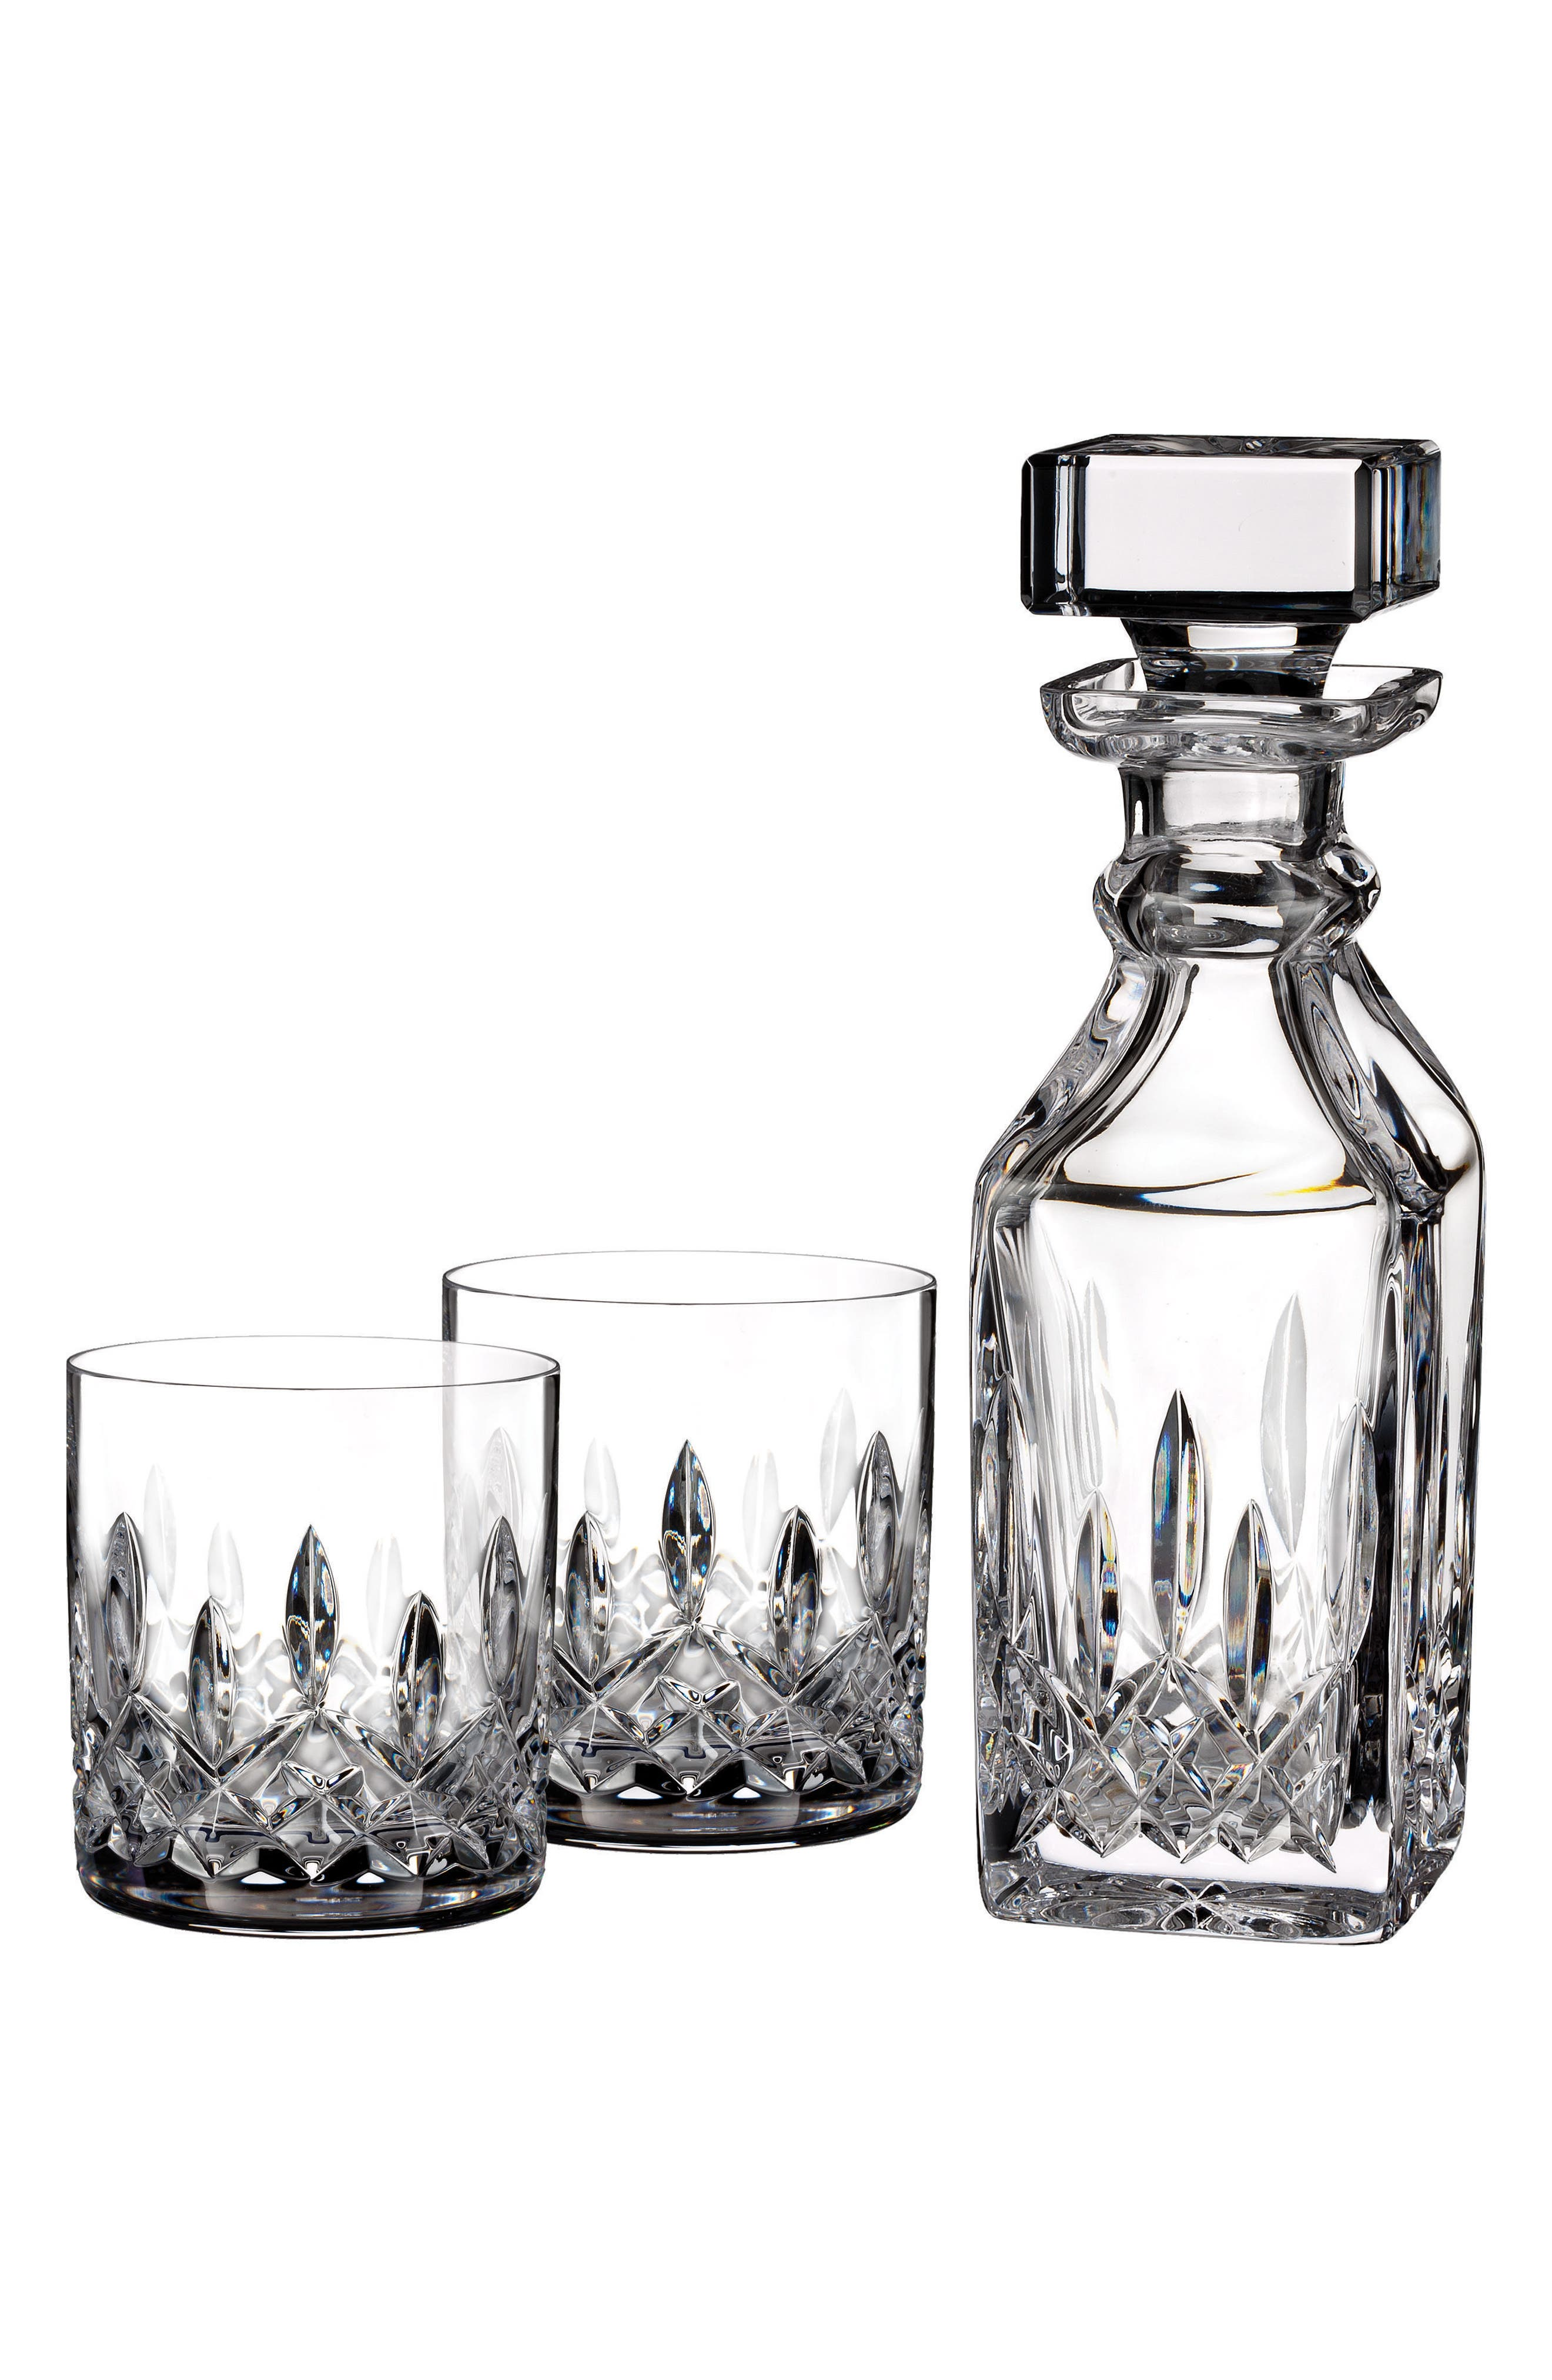 Main Image - Waterford Lismore Square Lead Crystal Decanter & Tumbler Glasses